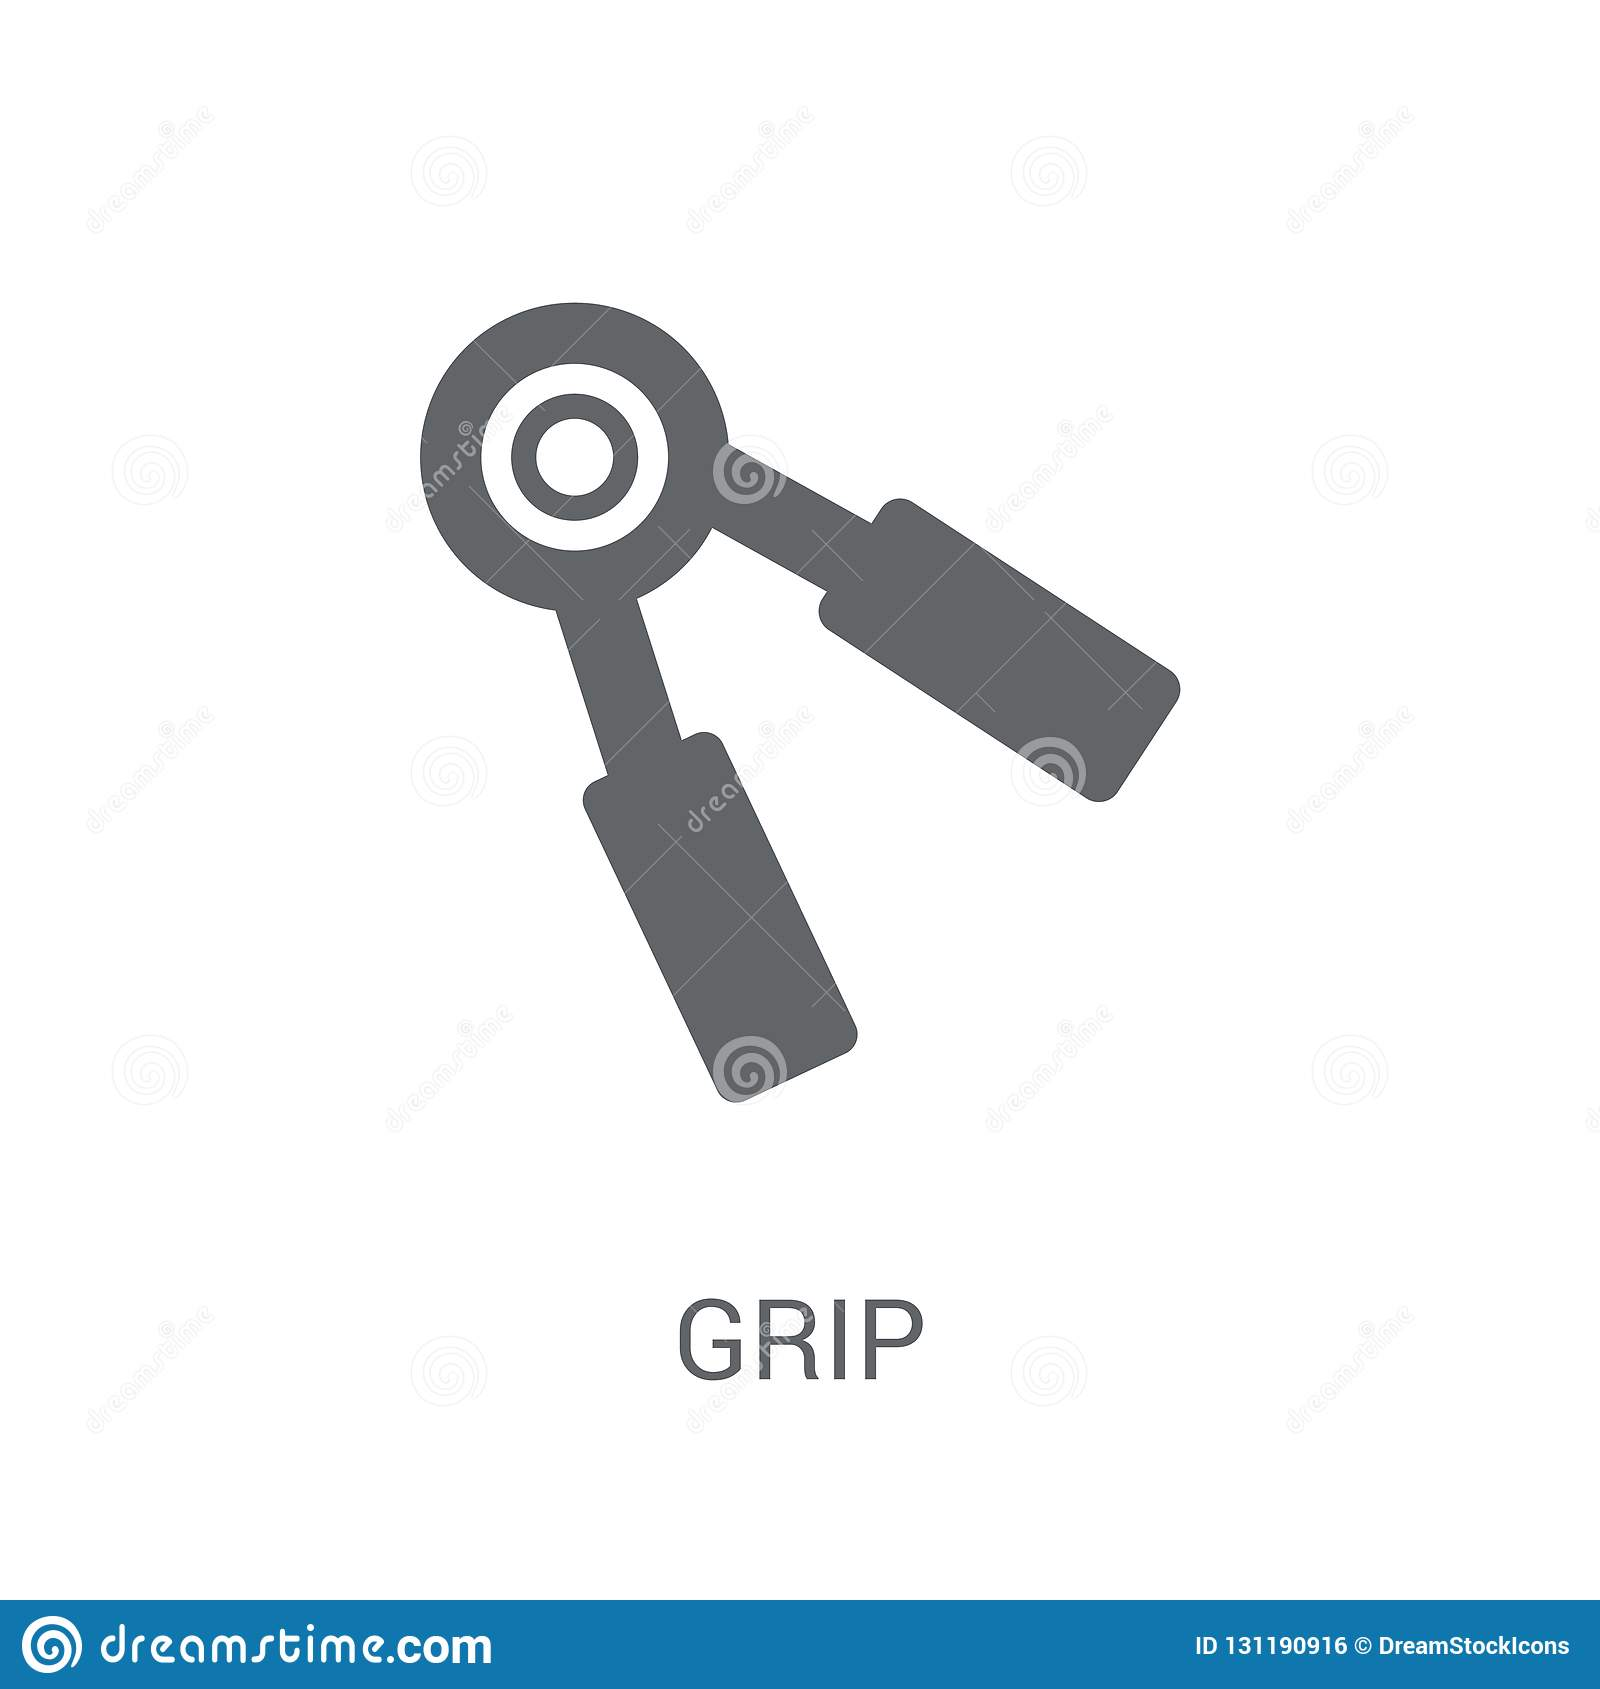 Grip icon. Trendy Grip logo concept on white background from Gym